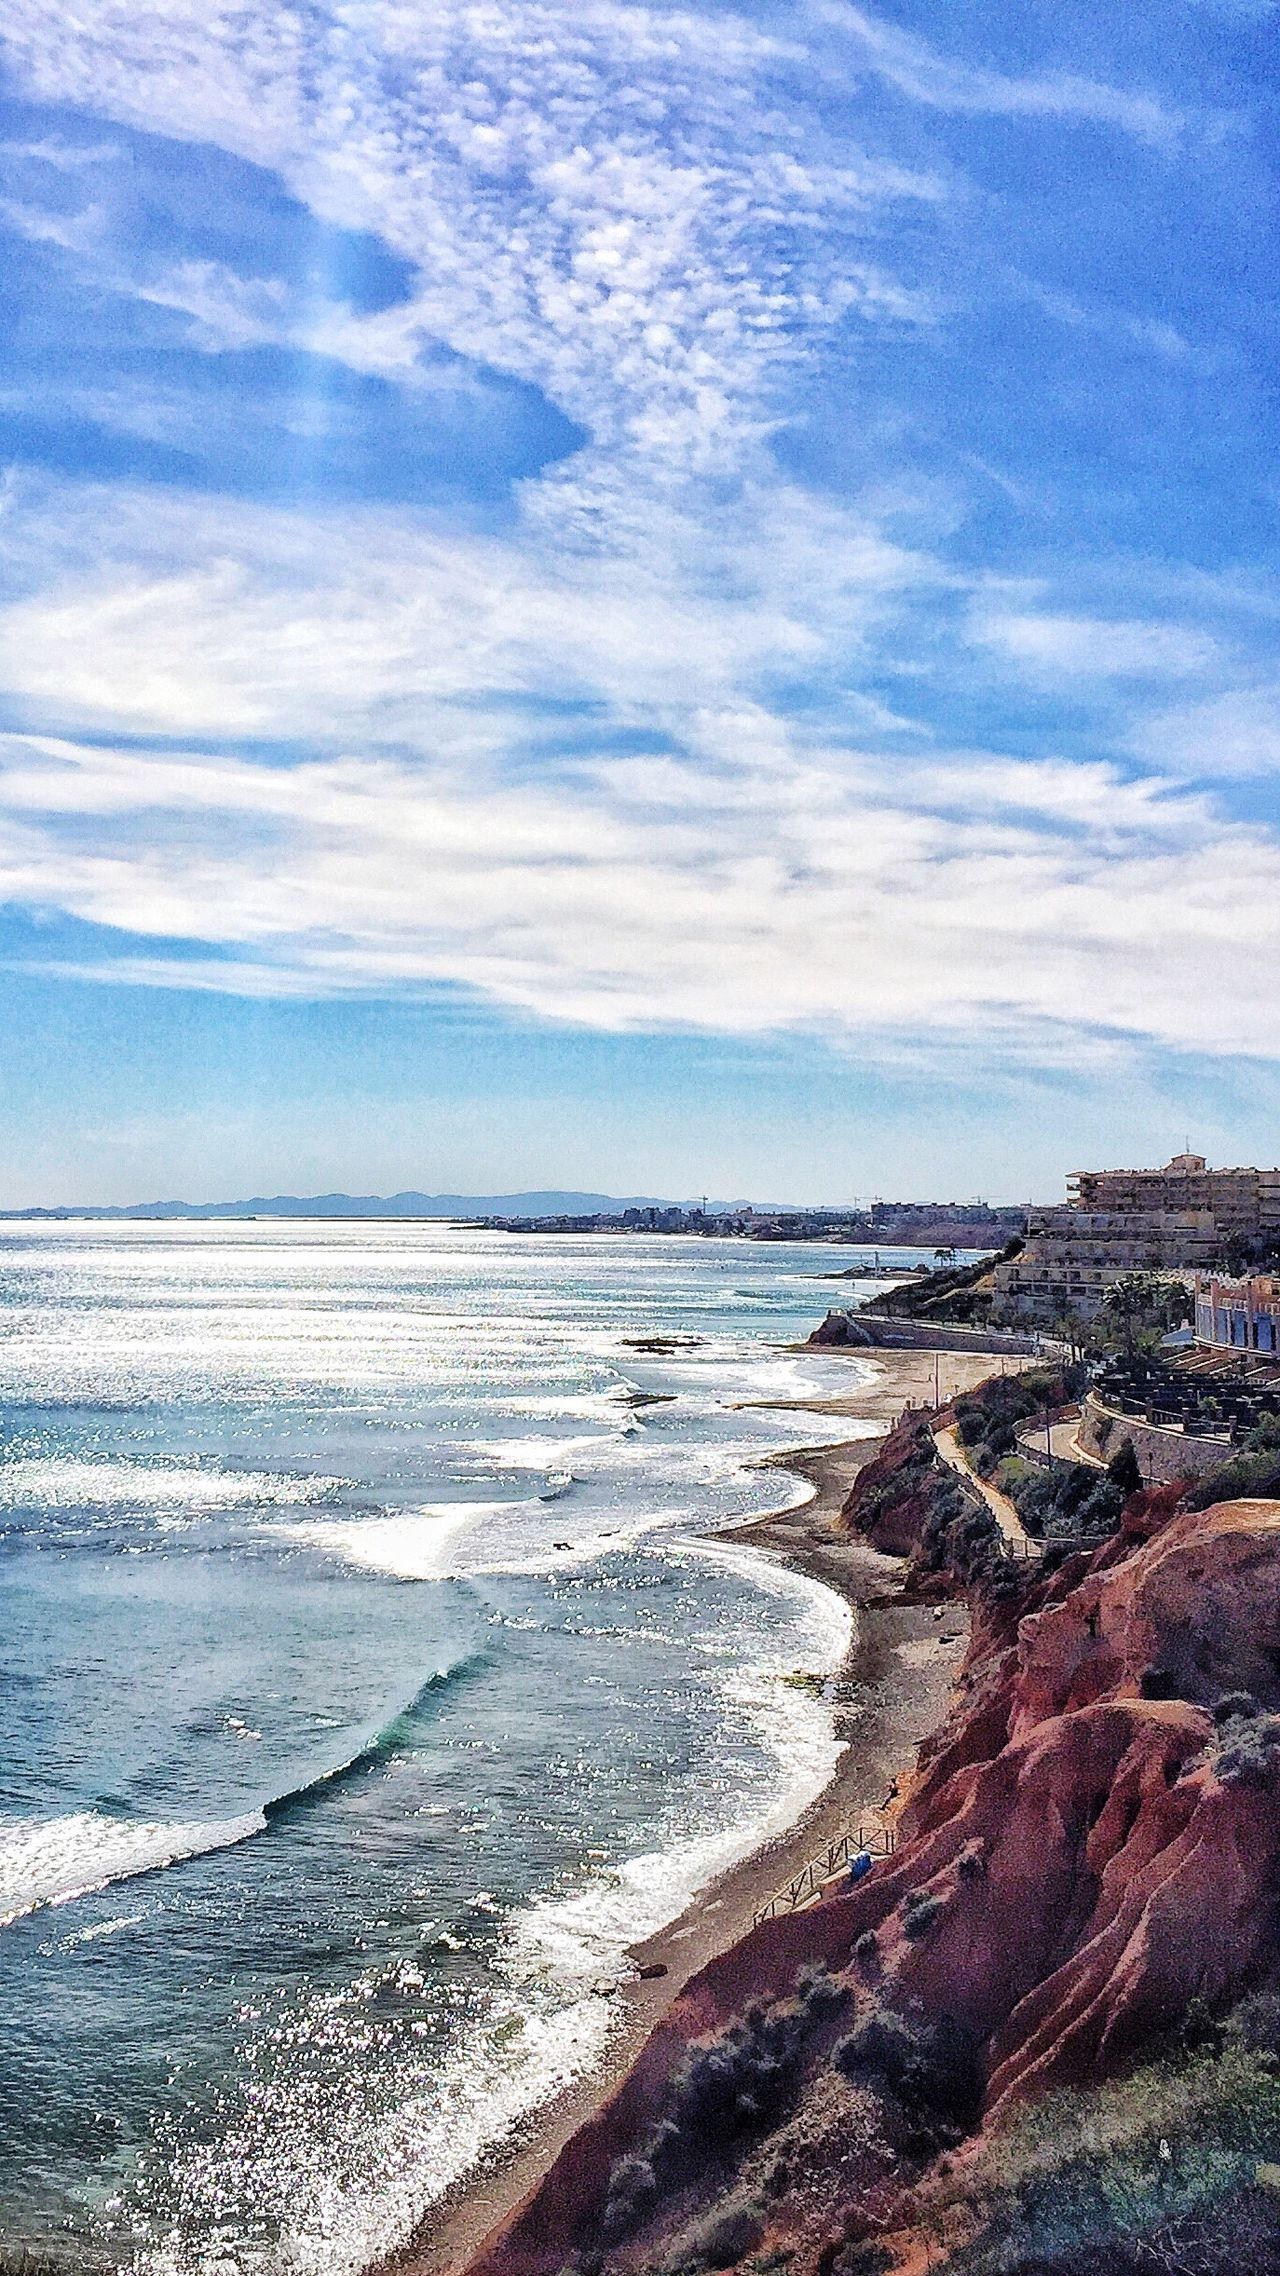 Coastline View from Orihuela  Cliff top across towards La Manga and San Javier in the Murcia area of Southern Spain♥ of the Mediterranean  Mediterranean Sea Sea Sea And Sky Sea And Sun Sea And Rocks Sea And Clouds Sea And Sand